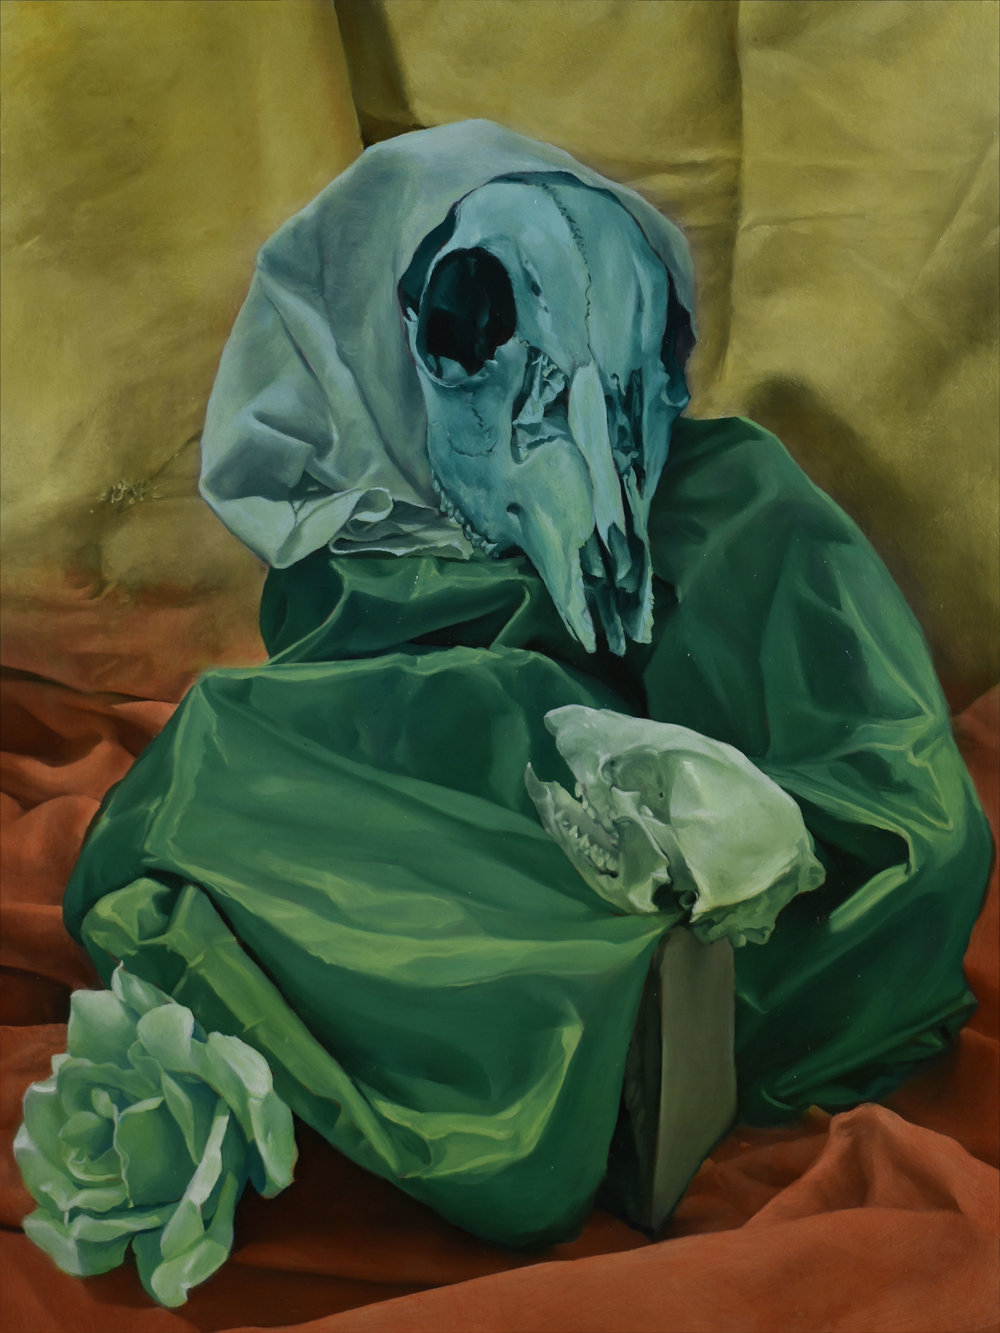 """- There is no painting better suited for explaining this phenomenon than Frosted Glasses (Editor's note: this work found a wonderful new home at Superfine! Miami). The fabric draped around the large blue skull creates the illusion of a person wearing a headscarf and a robe. Two shoulders take shape, as does the suggestion of an elbow and a knee. It seems as if this bony being is sitting, hunched over, with one leg bent. The second, smaller skull, facing the large blue one, completes the composition. Suddenly, we are looking at a Pietà—an image of the Virgin Mary and the baby Christ.Reed describes the creatures he brings to life as """"perceived beings, imperfectly evoked by an arrangement of objects, [or] a certain angle of the light."""" The artist goes on to explain that the creatures' humanity is a projection of the viewer—and the artist's—psyche. What this means is that we choose to see Reed's creatures as alive, and use a ray of light or a religious image to support our claim."""